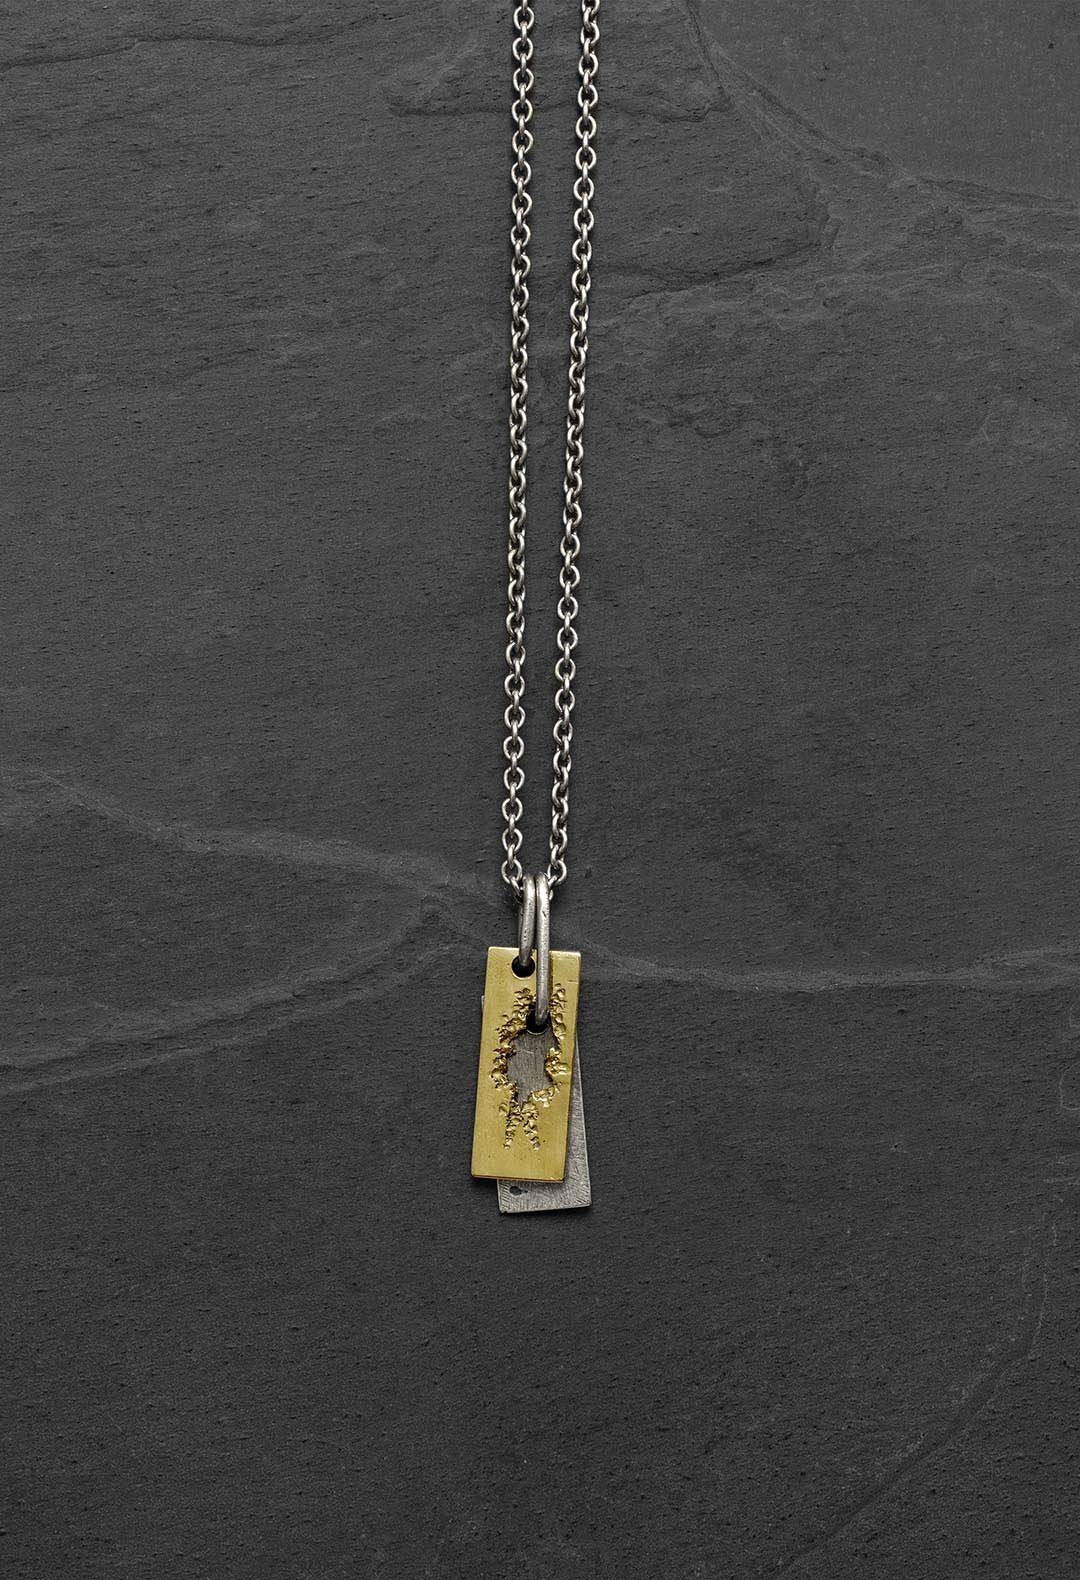 Eroded gold plate necklace